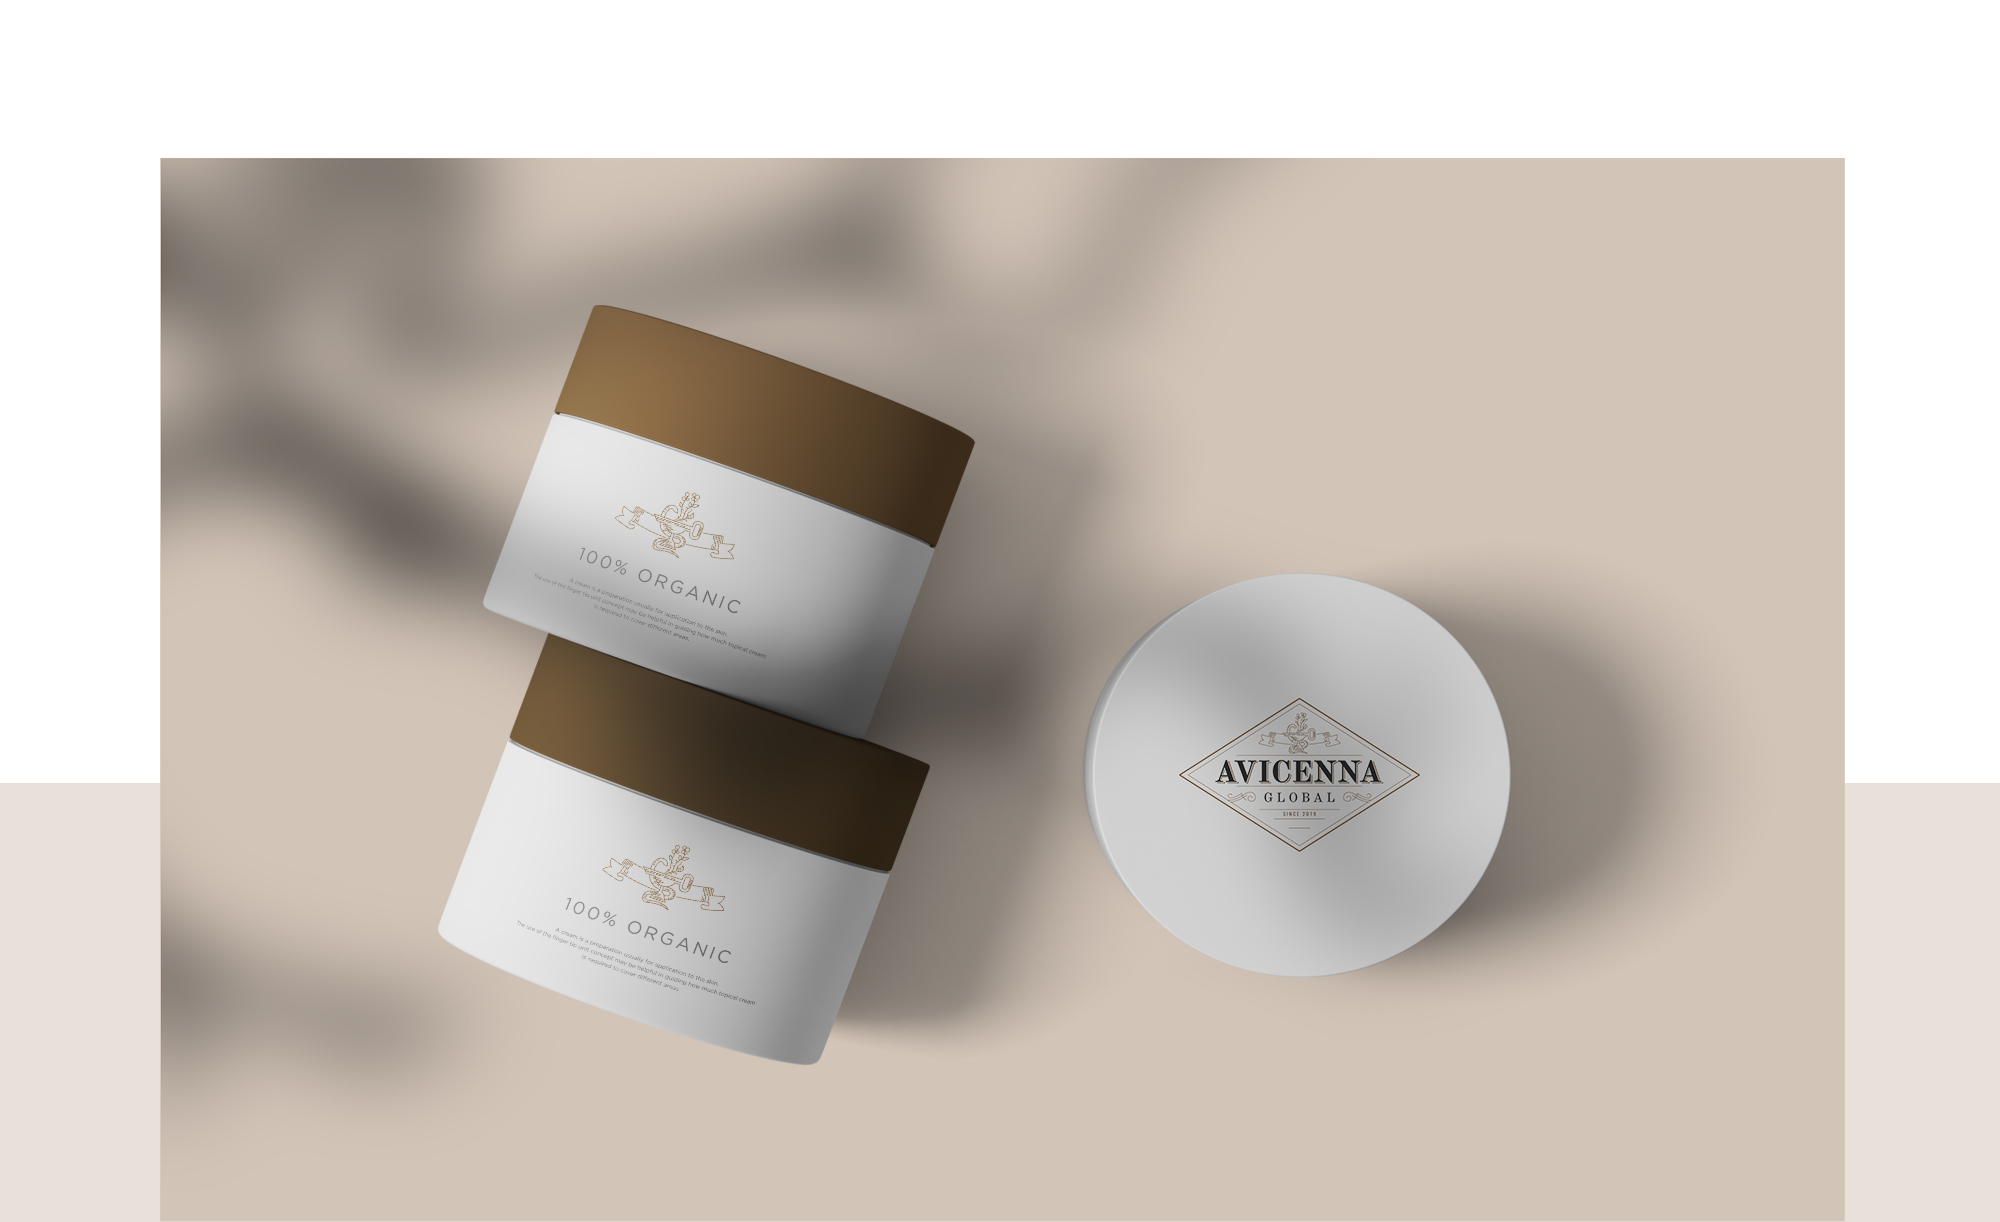 Avicenna Global branding design